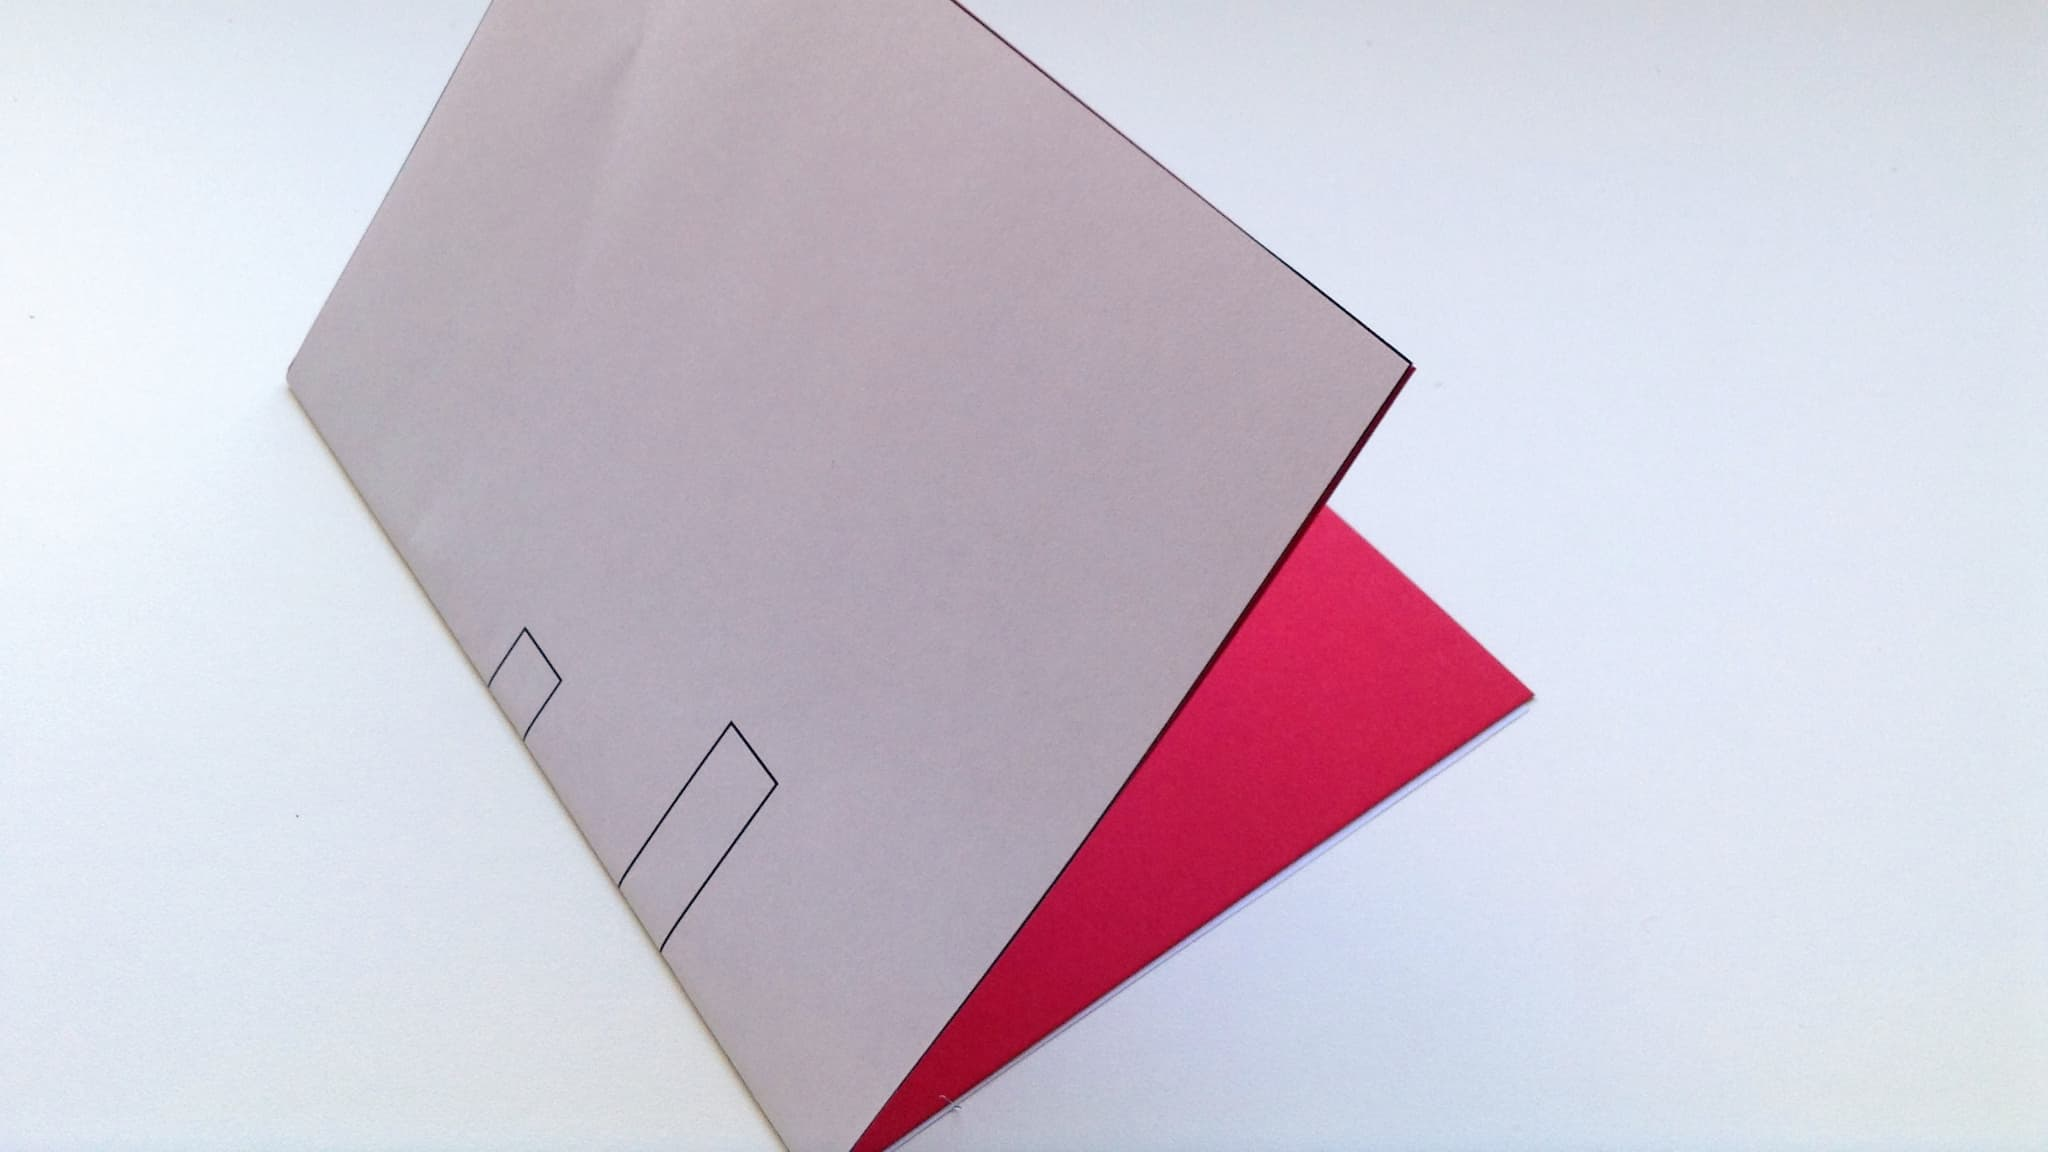 Place the card template behind your red Valentine's card